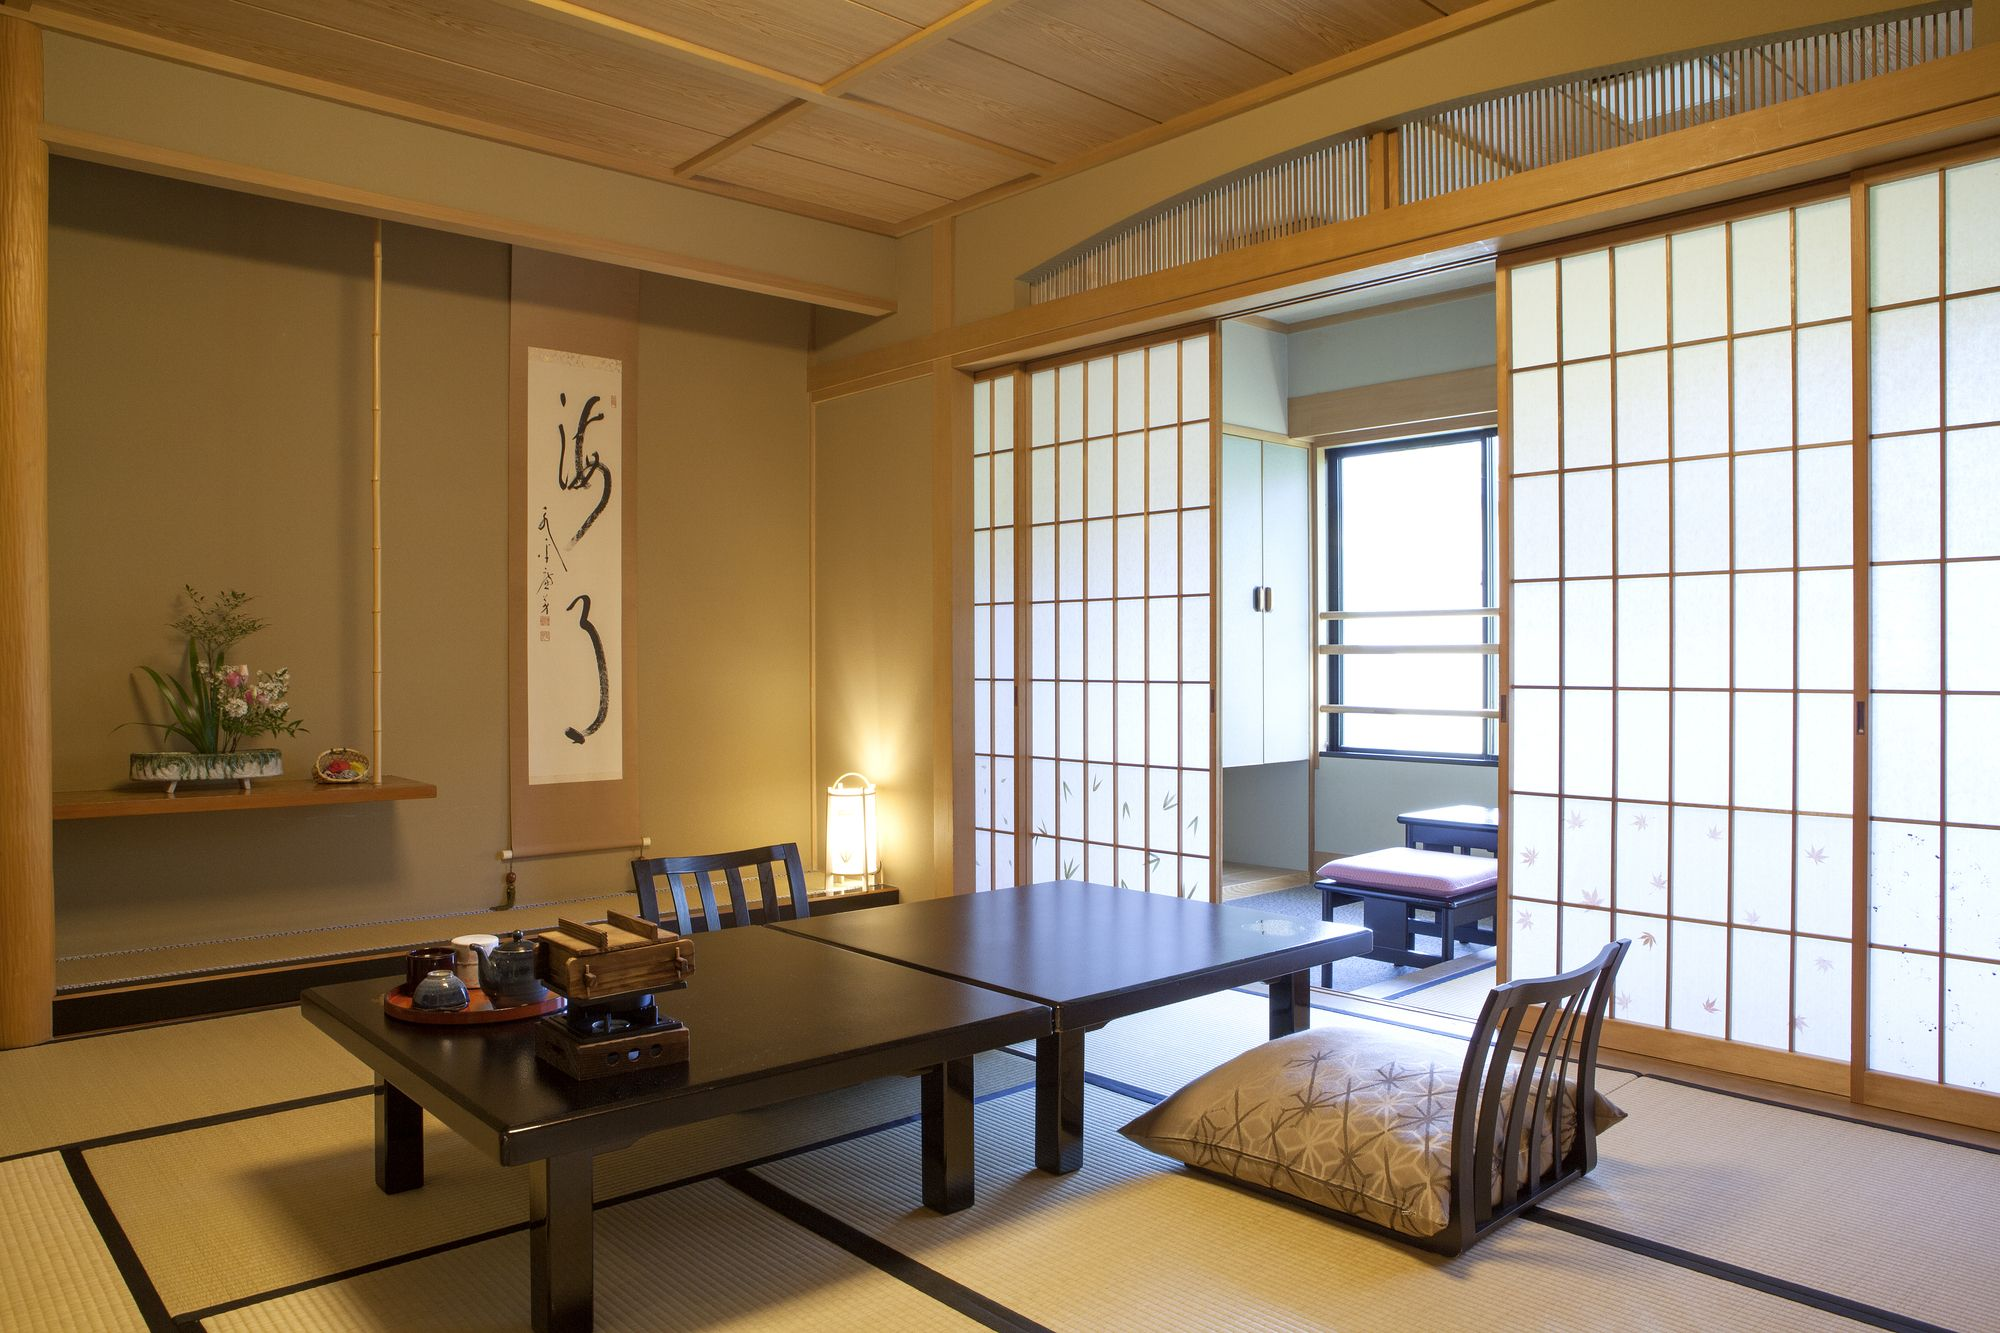 Pin By Nicole On Home In 2020 Japanese Interior Design Interior Design Elements Traditional Interior Design #traditional #japanese #living #room